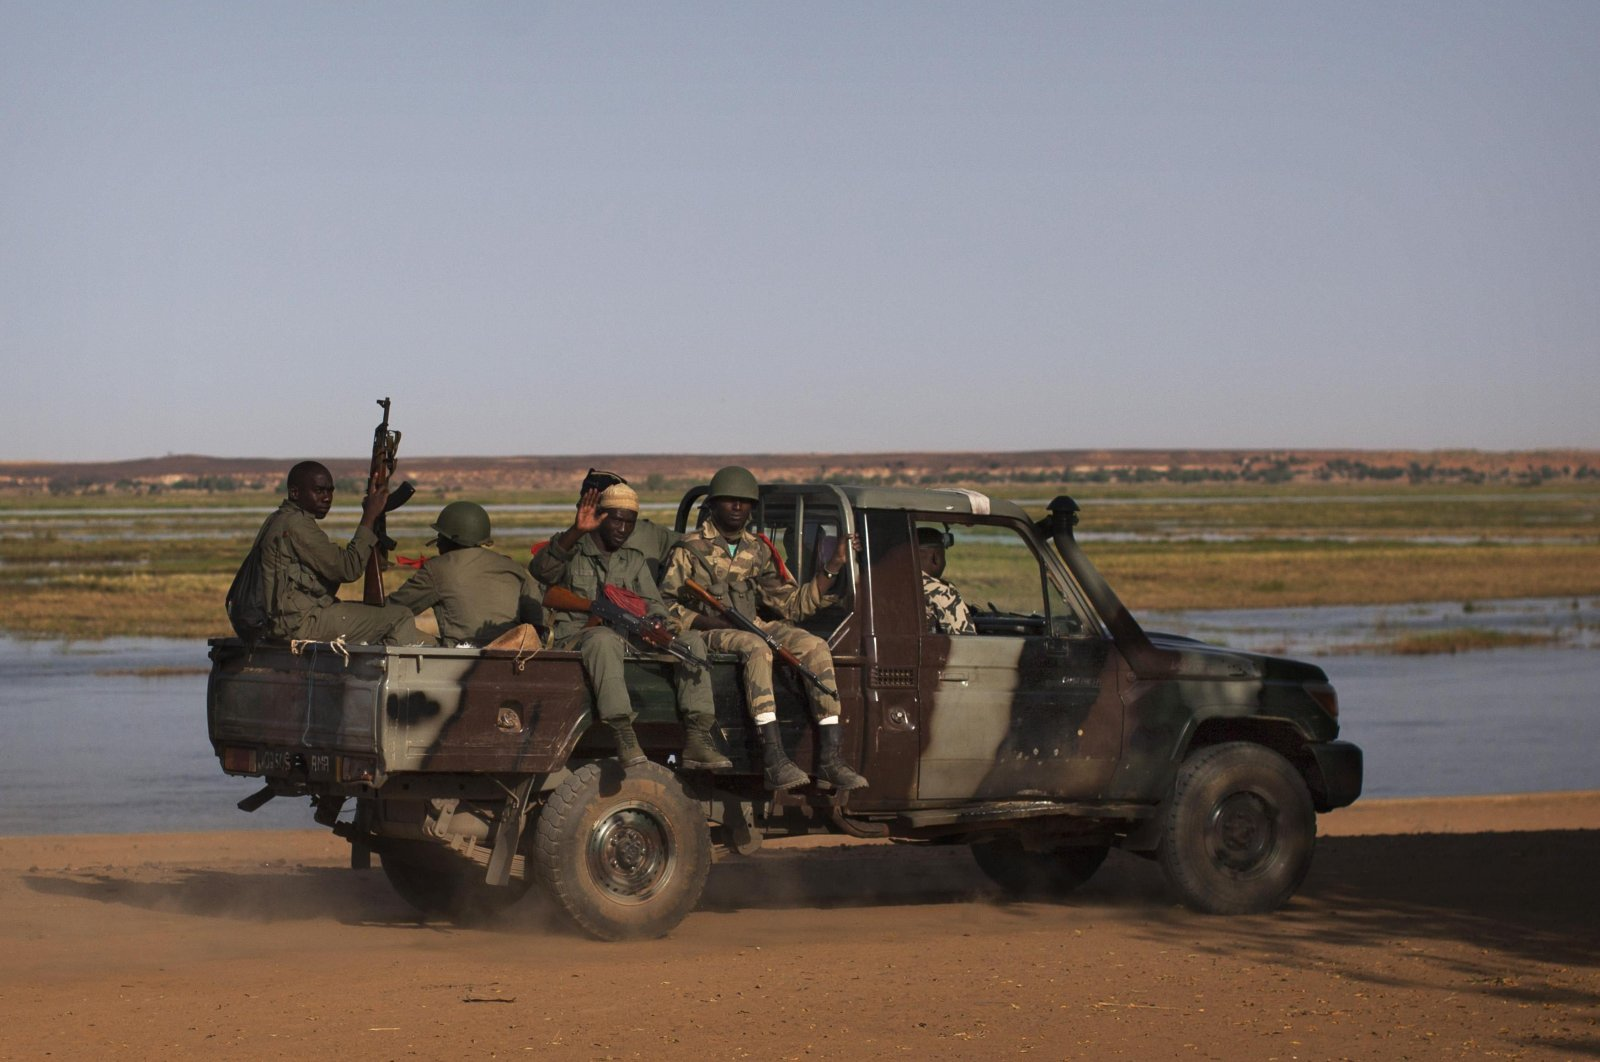 Malian soldiers patrol the banks of the Niger River in a military vehicle in Gao, Mali, Feb. 26, 2013. (Reuters Photo)